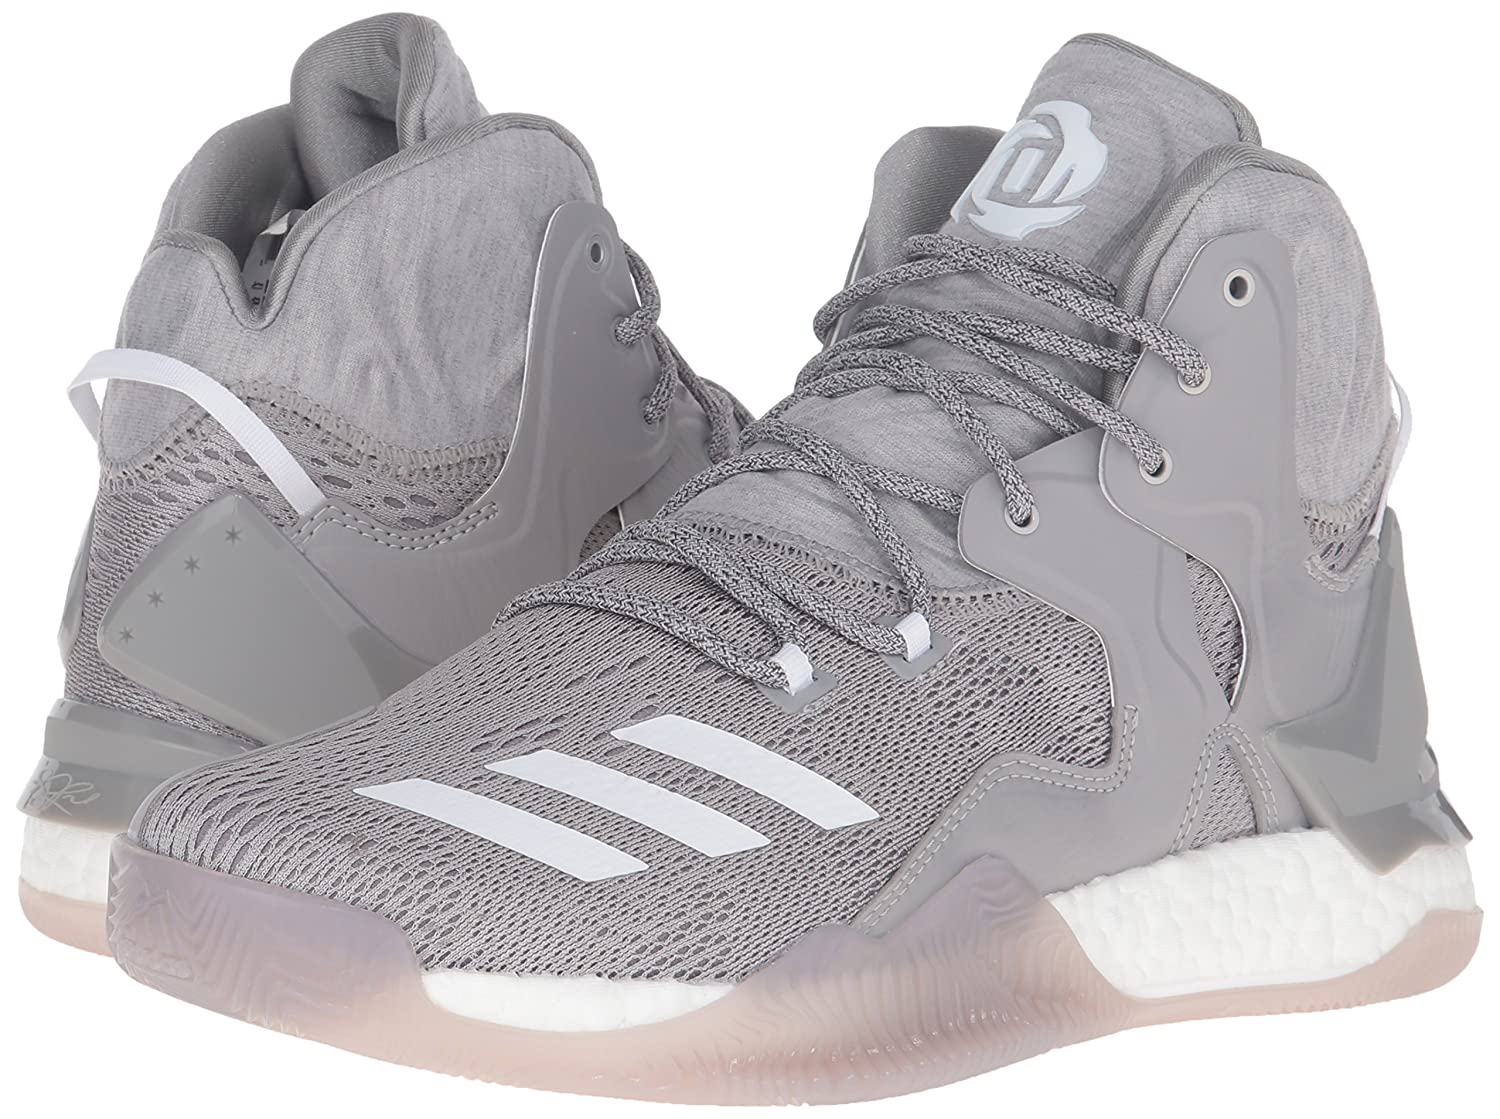 separation shoes 04b1a 59f1b Amazon.com  adidas Performance Mens D Rose 7 Basketball Shoe